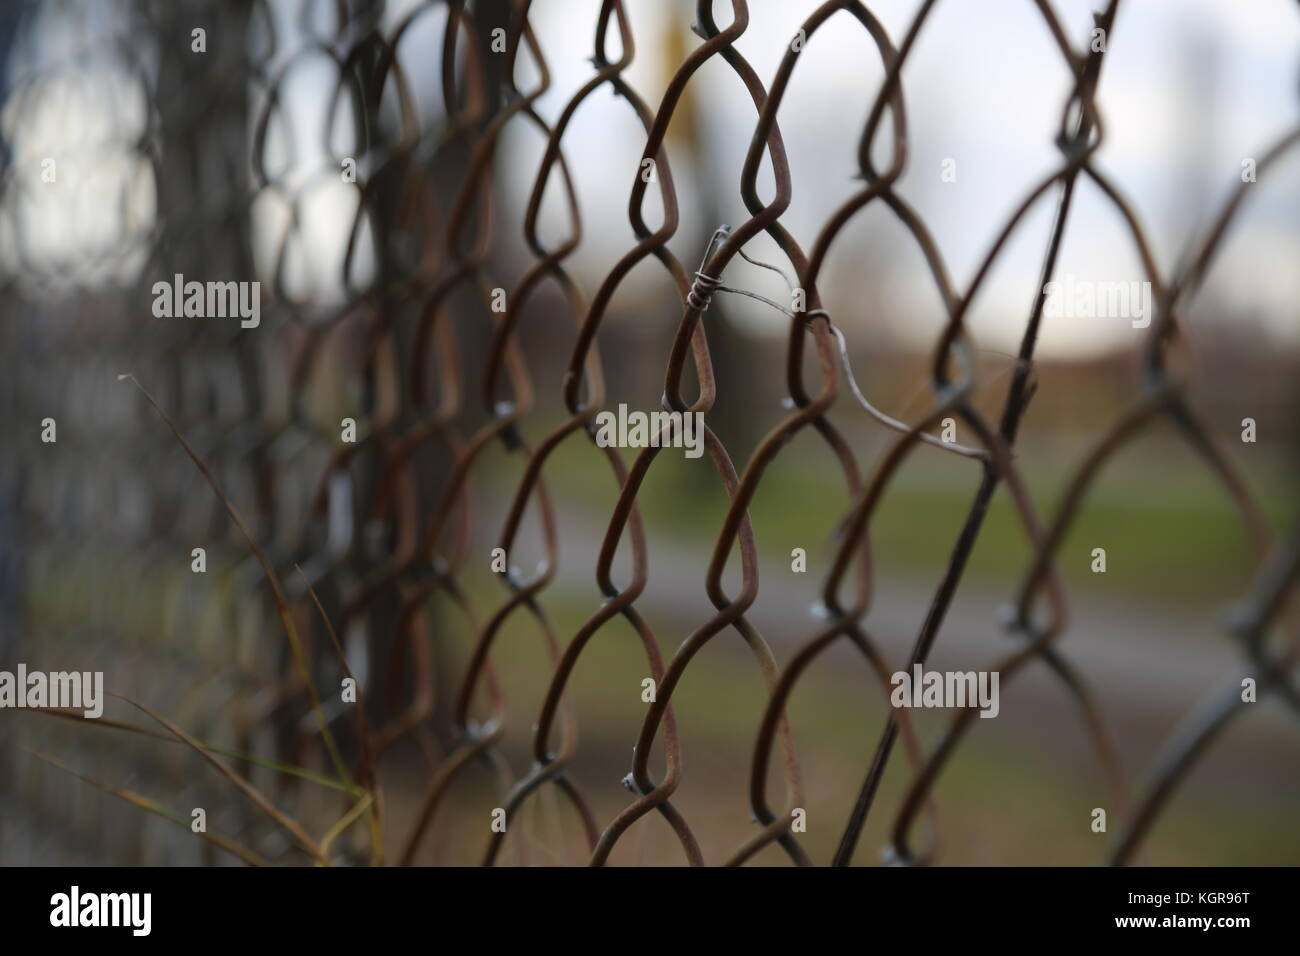 Metal wire Fence with the Lachine Canal in the Background - Stock Image